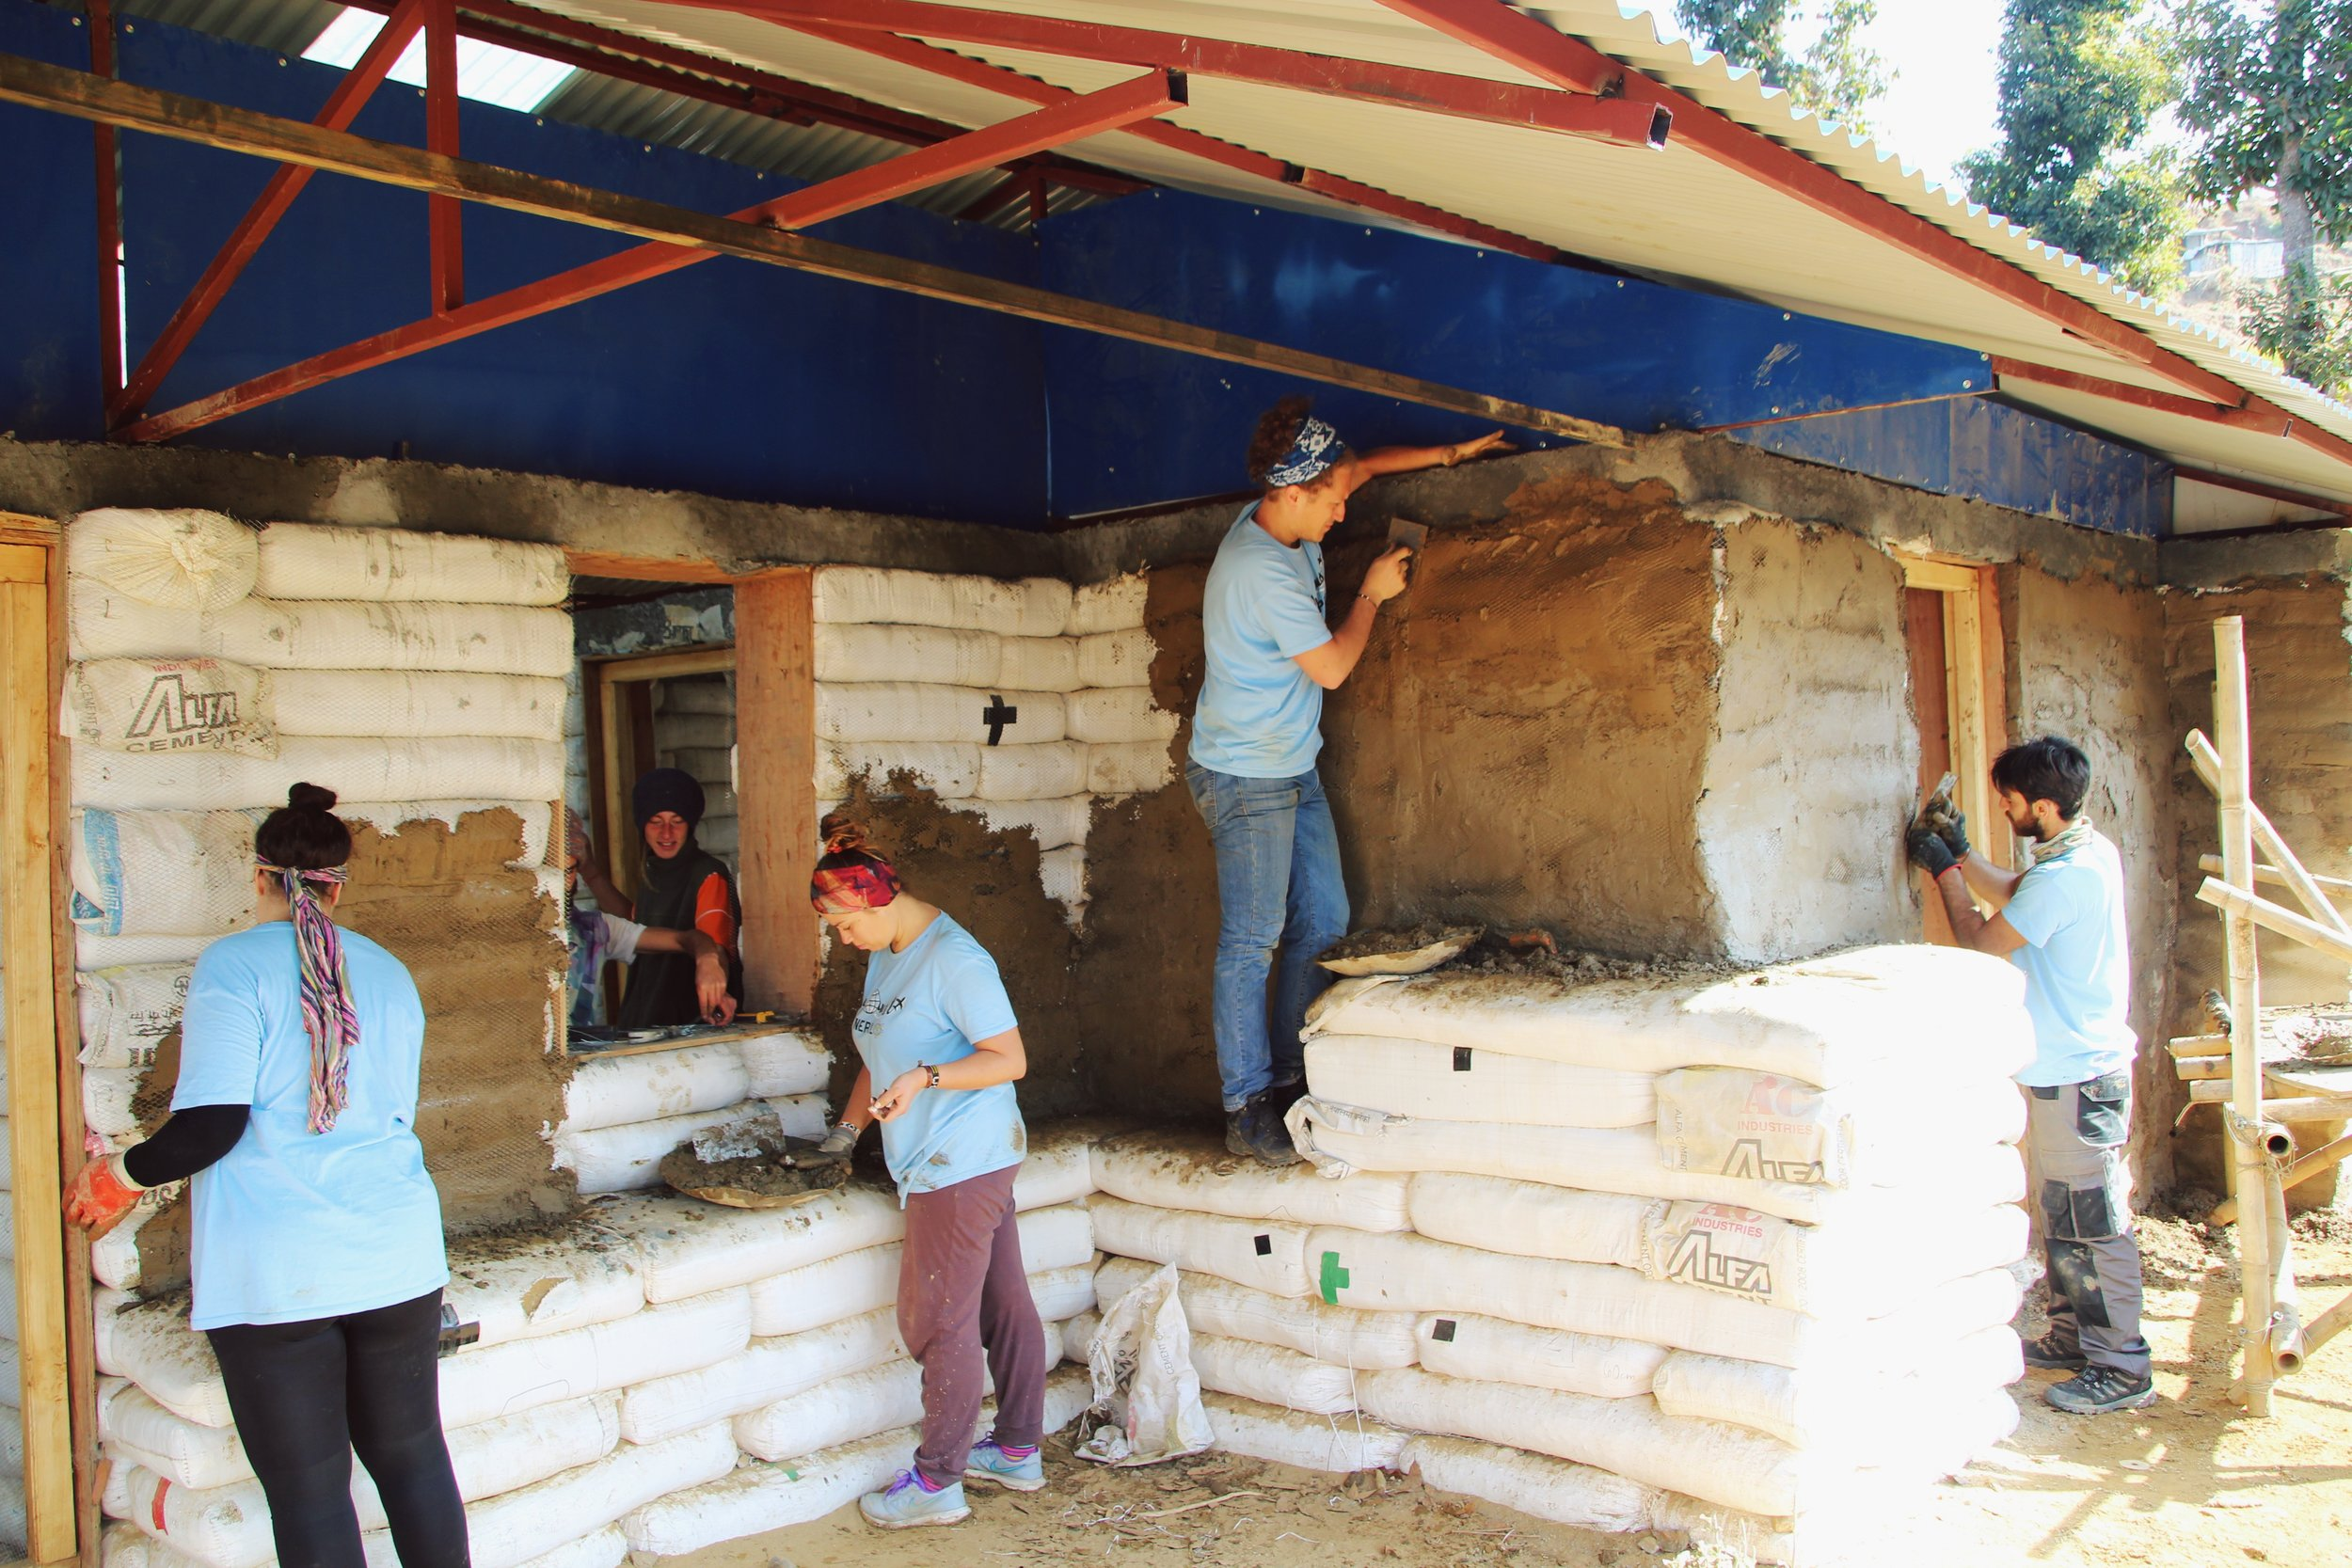 Plastering the Coffee Cooperative's outside walls in February. The project is now complete!